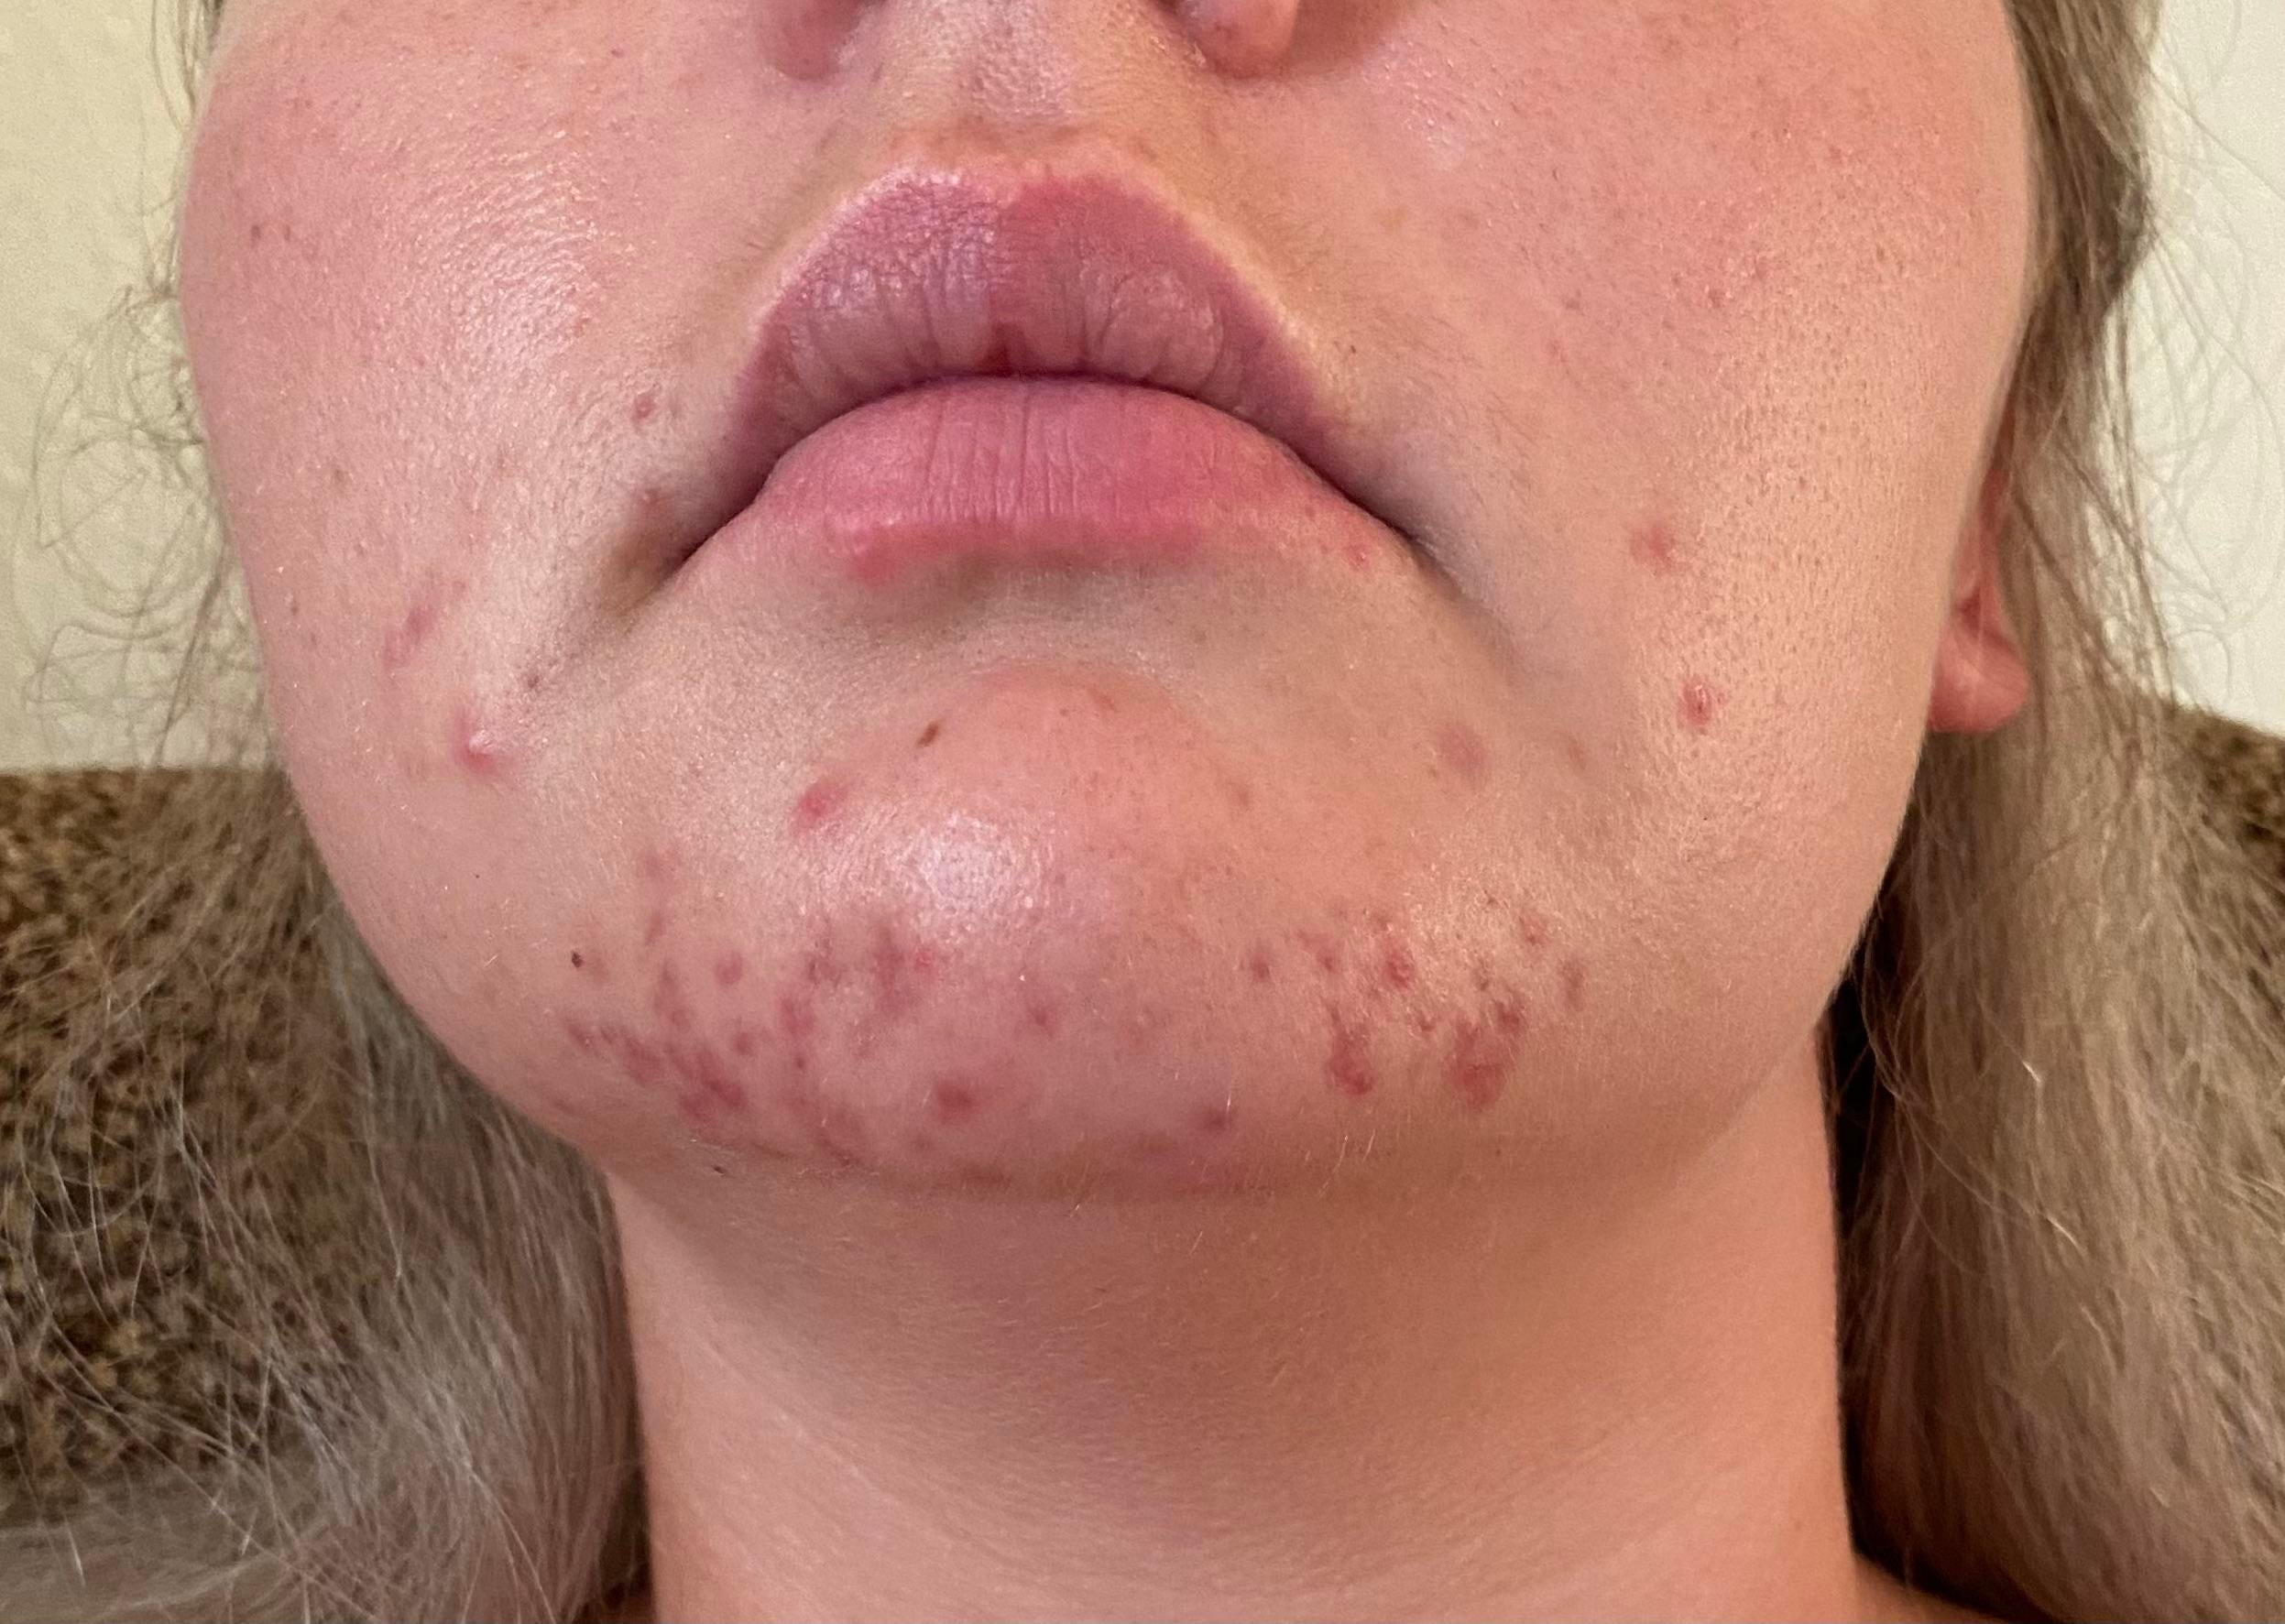 """[skin concerns] help! Initially thought I had """"maskne"""" but did not improve with SA, Dr. diagnosed peri oral dermatitis, now on antibiotics for about 2 weeks and still no improvement – any recommendations?"""